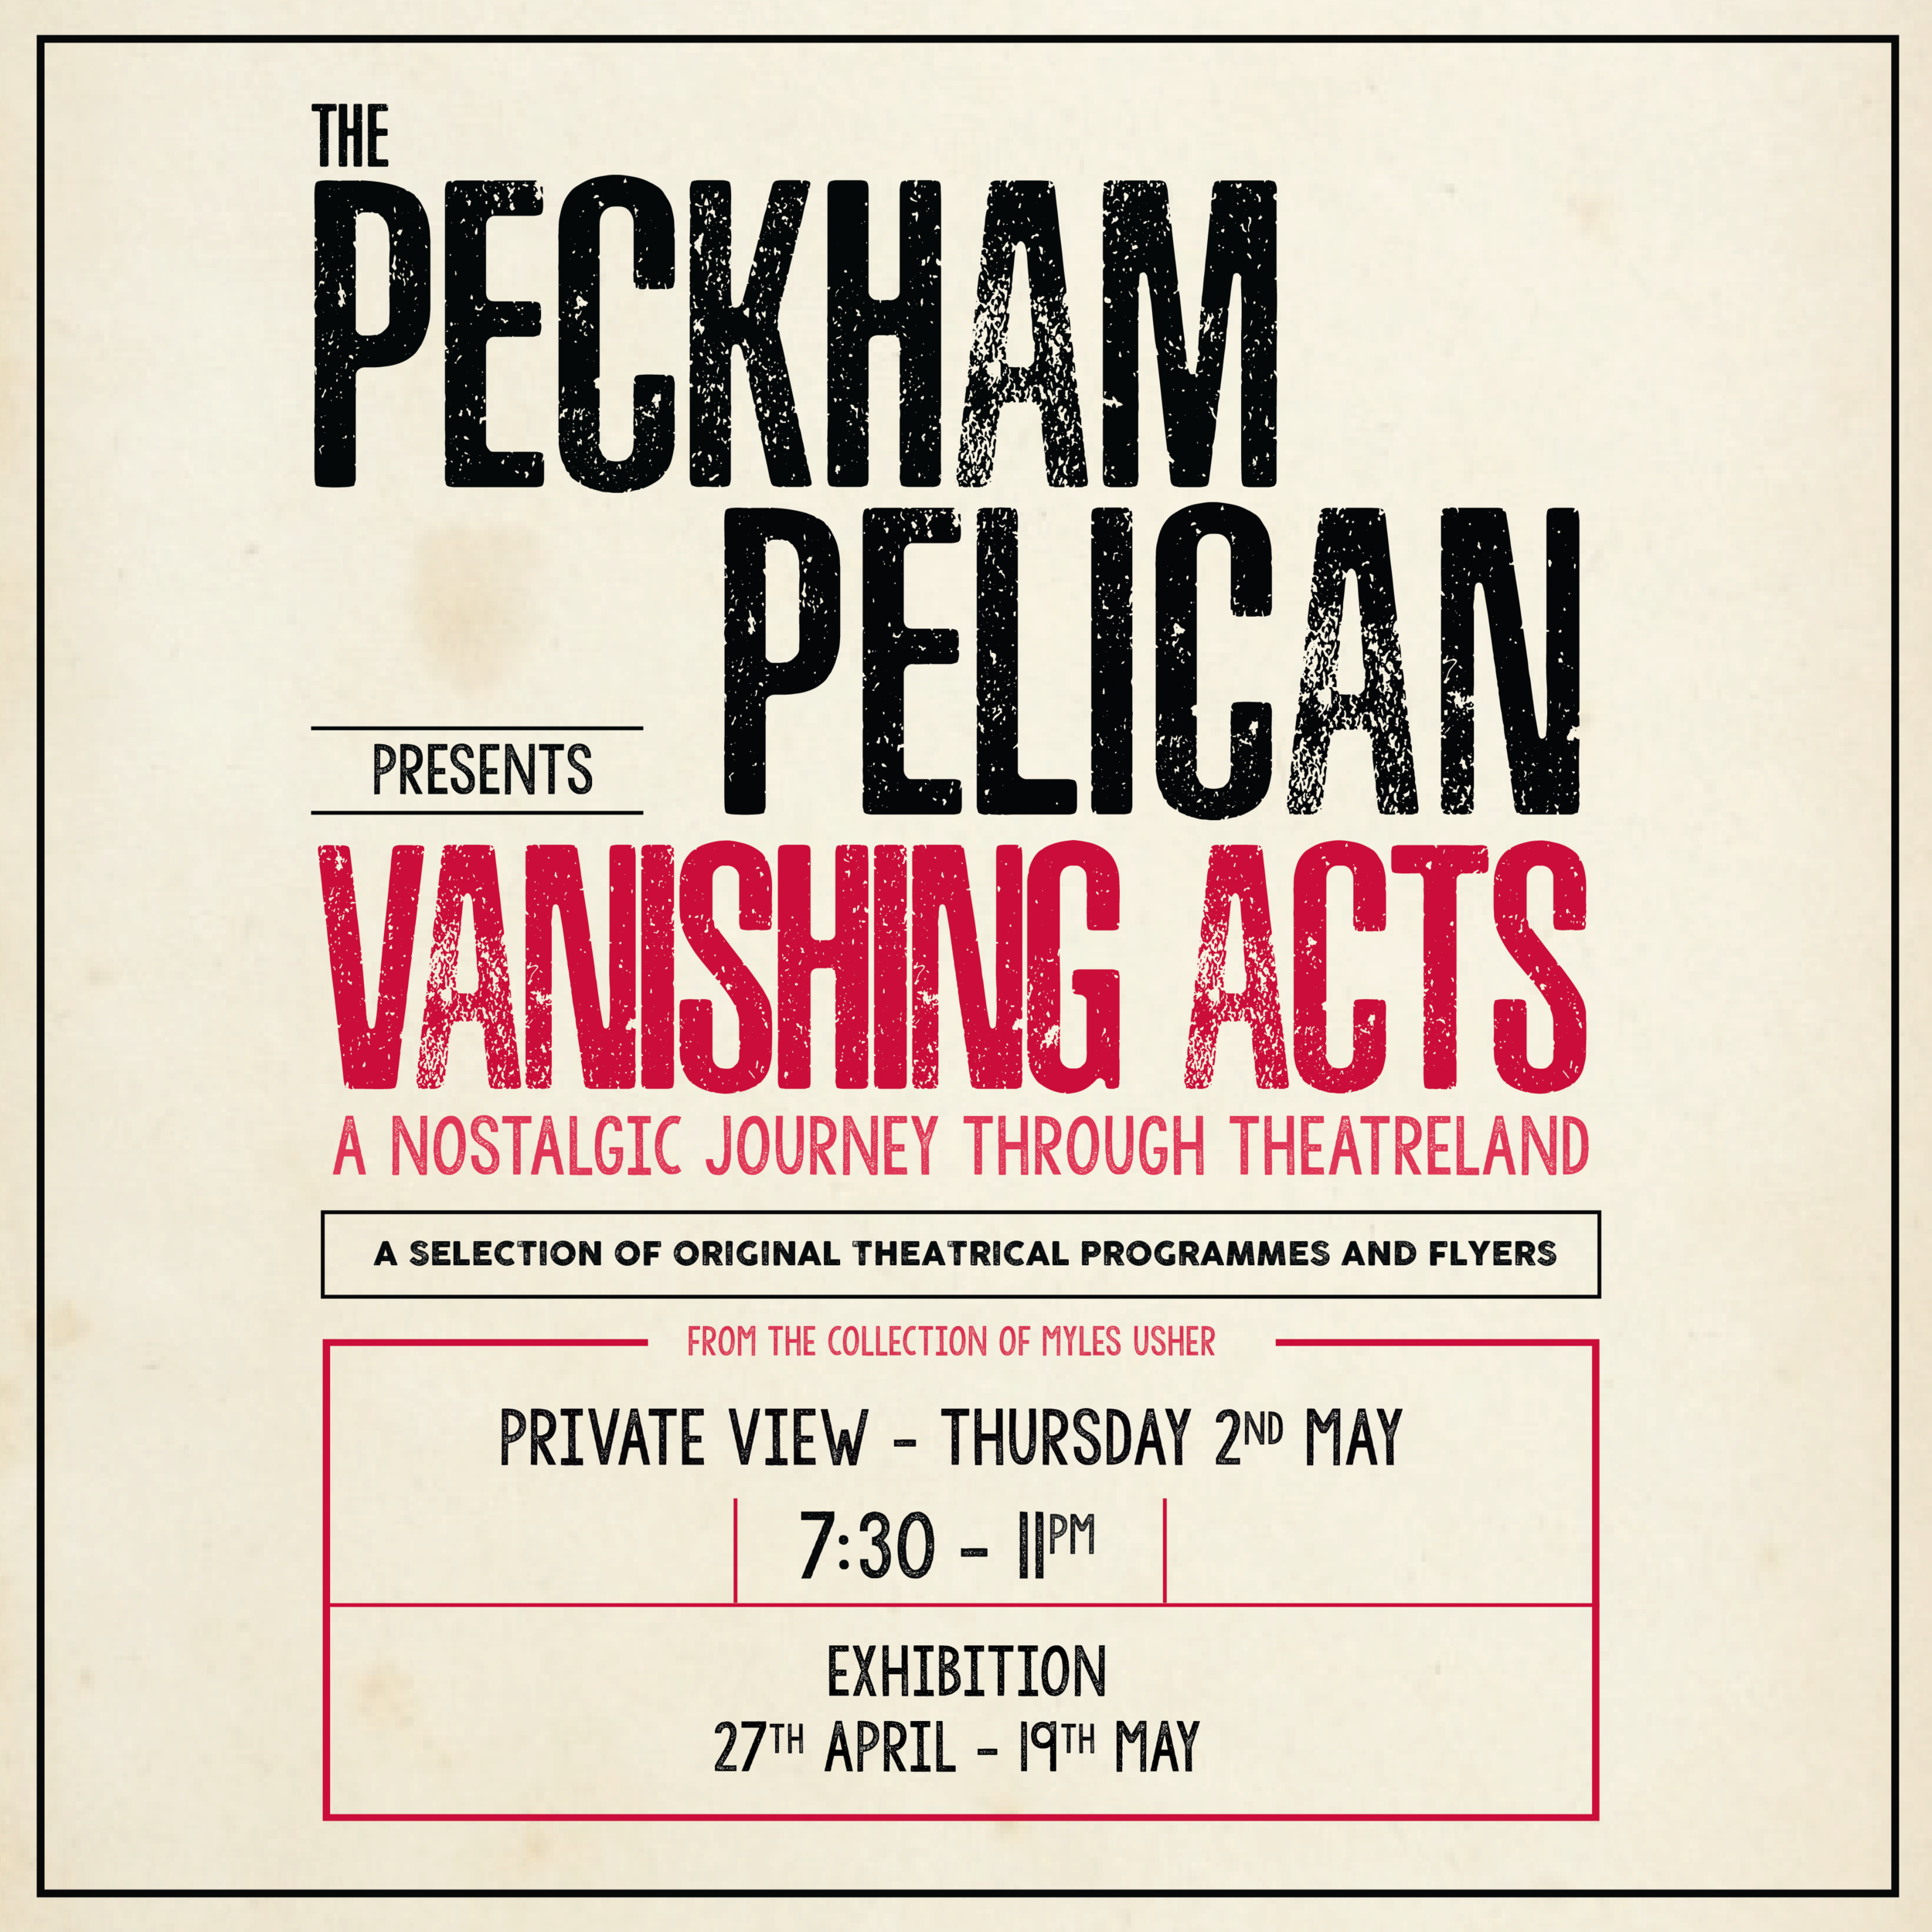 Peckham-pelican-exhibition